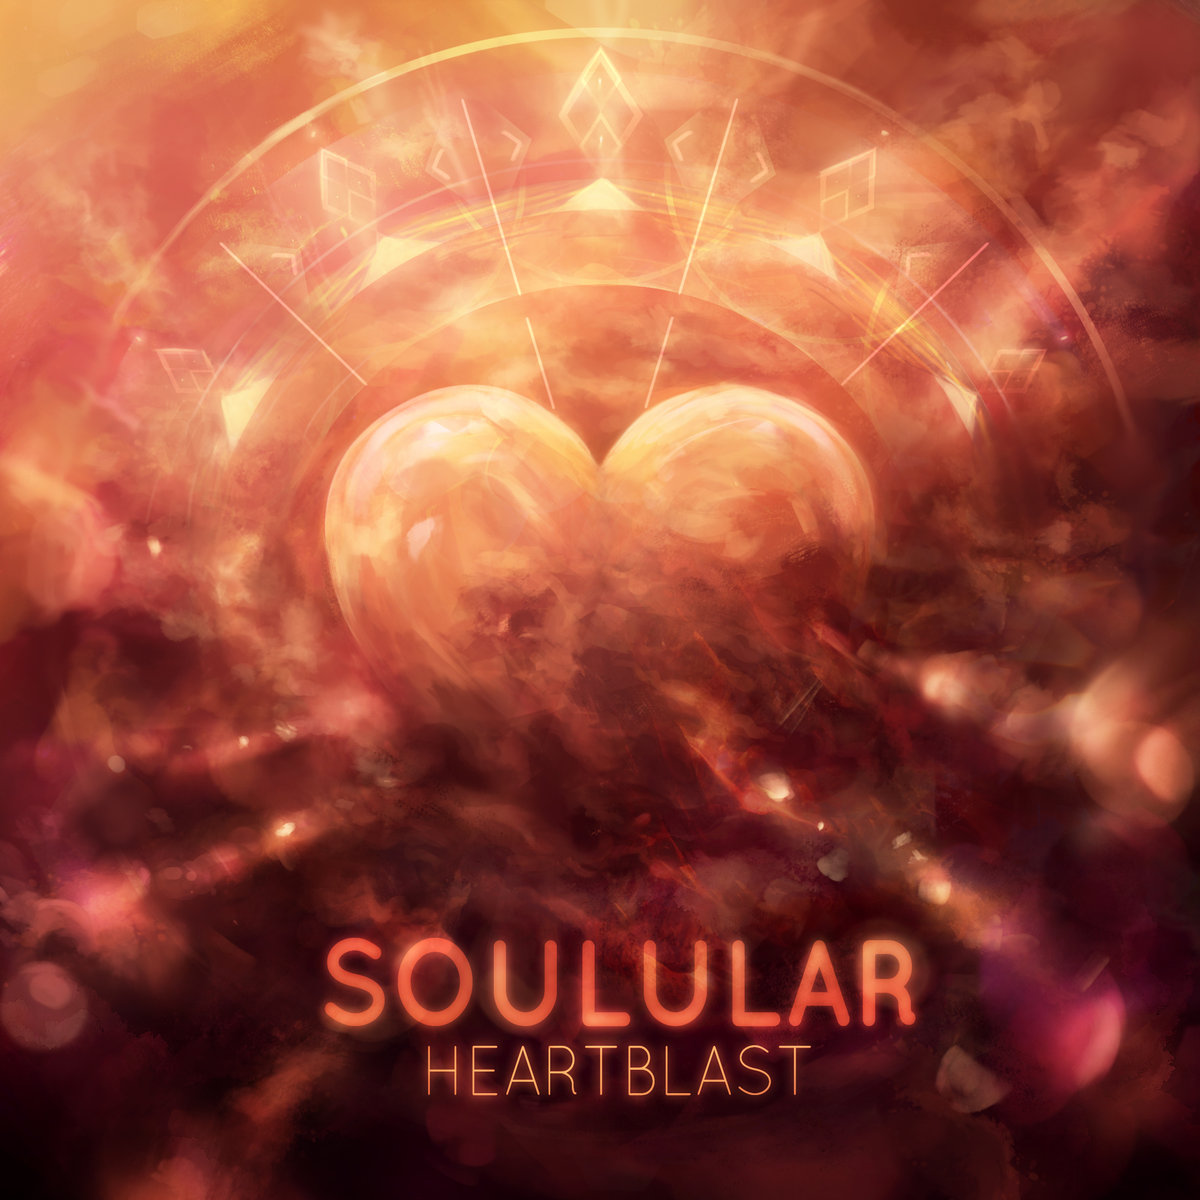 Soulular - Heartblast (artwork)